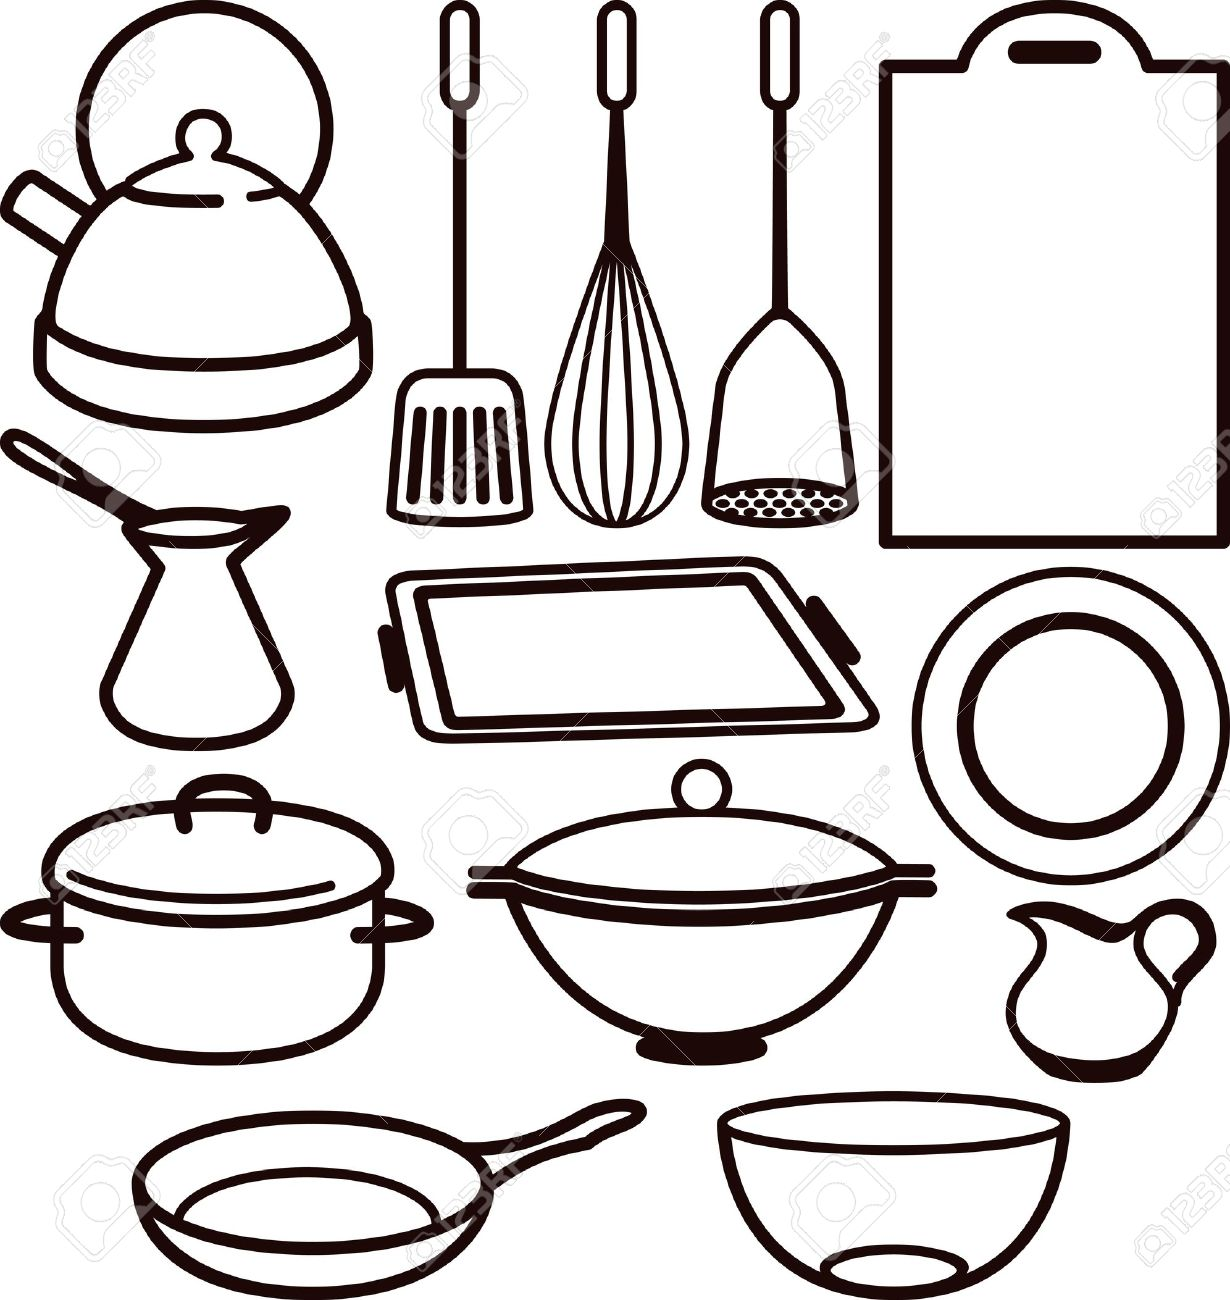 Utensils Clipart Black And White.